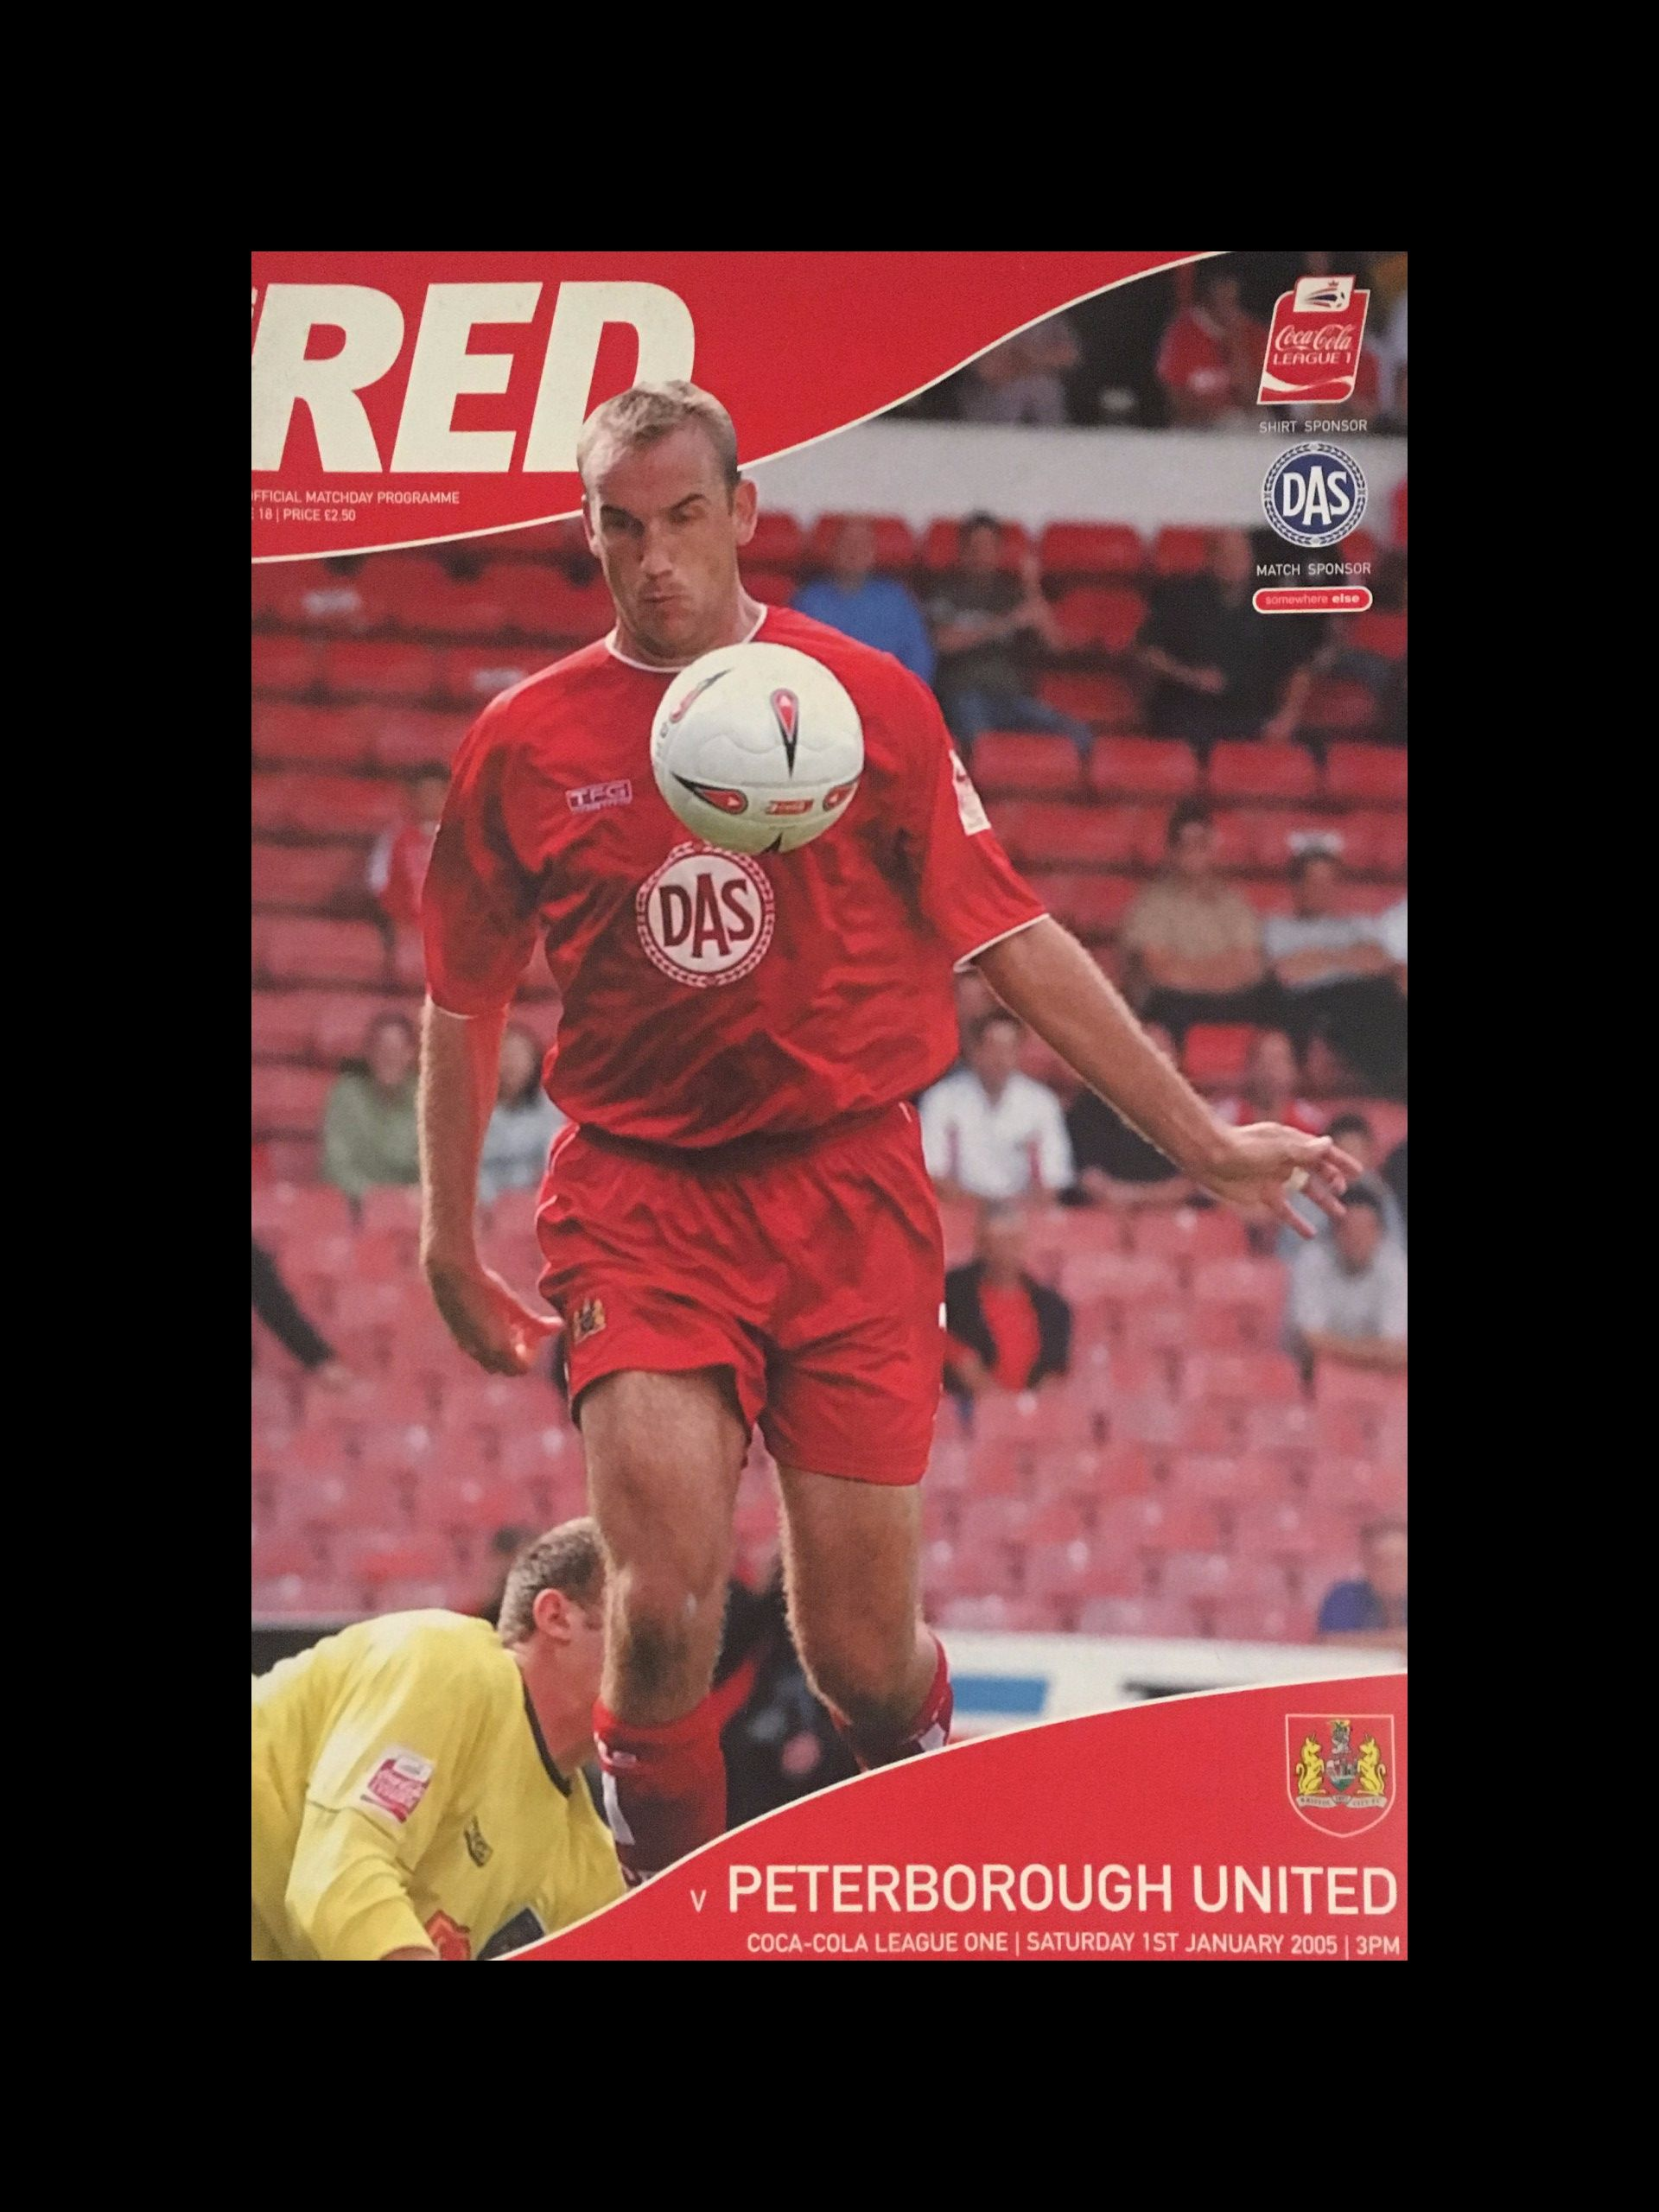 Bristol City v Peterborough United 01-01-2005 Programme